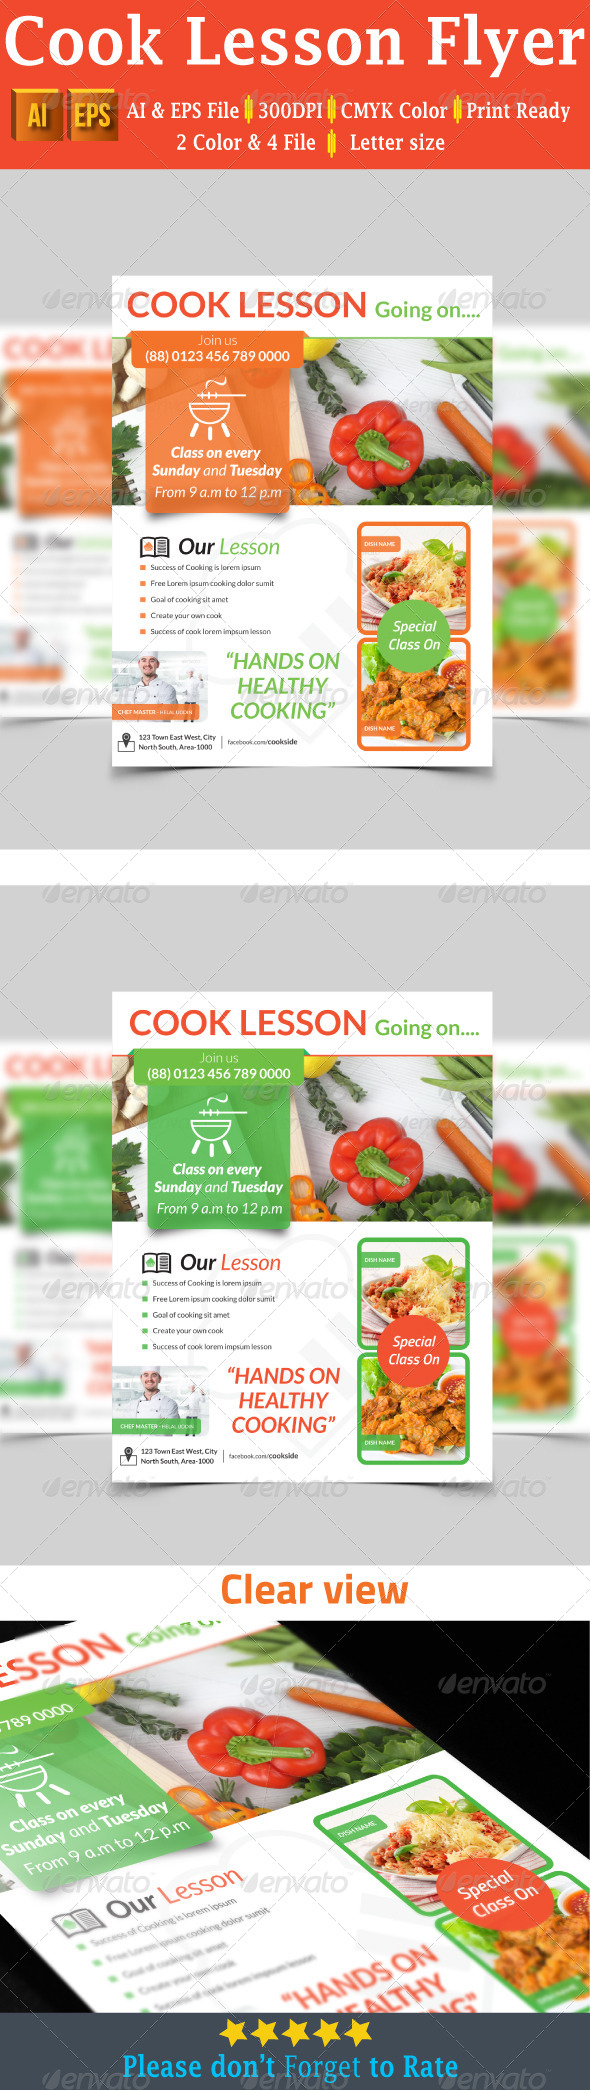 Cook Lesson Flyer - Flyers Print Templates